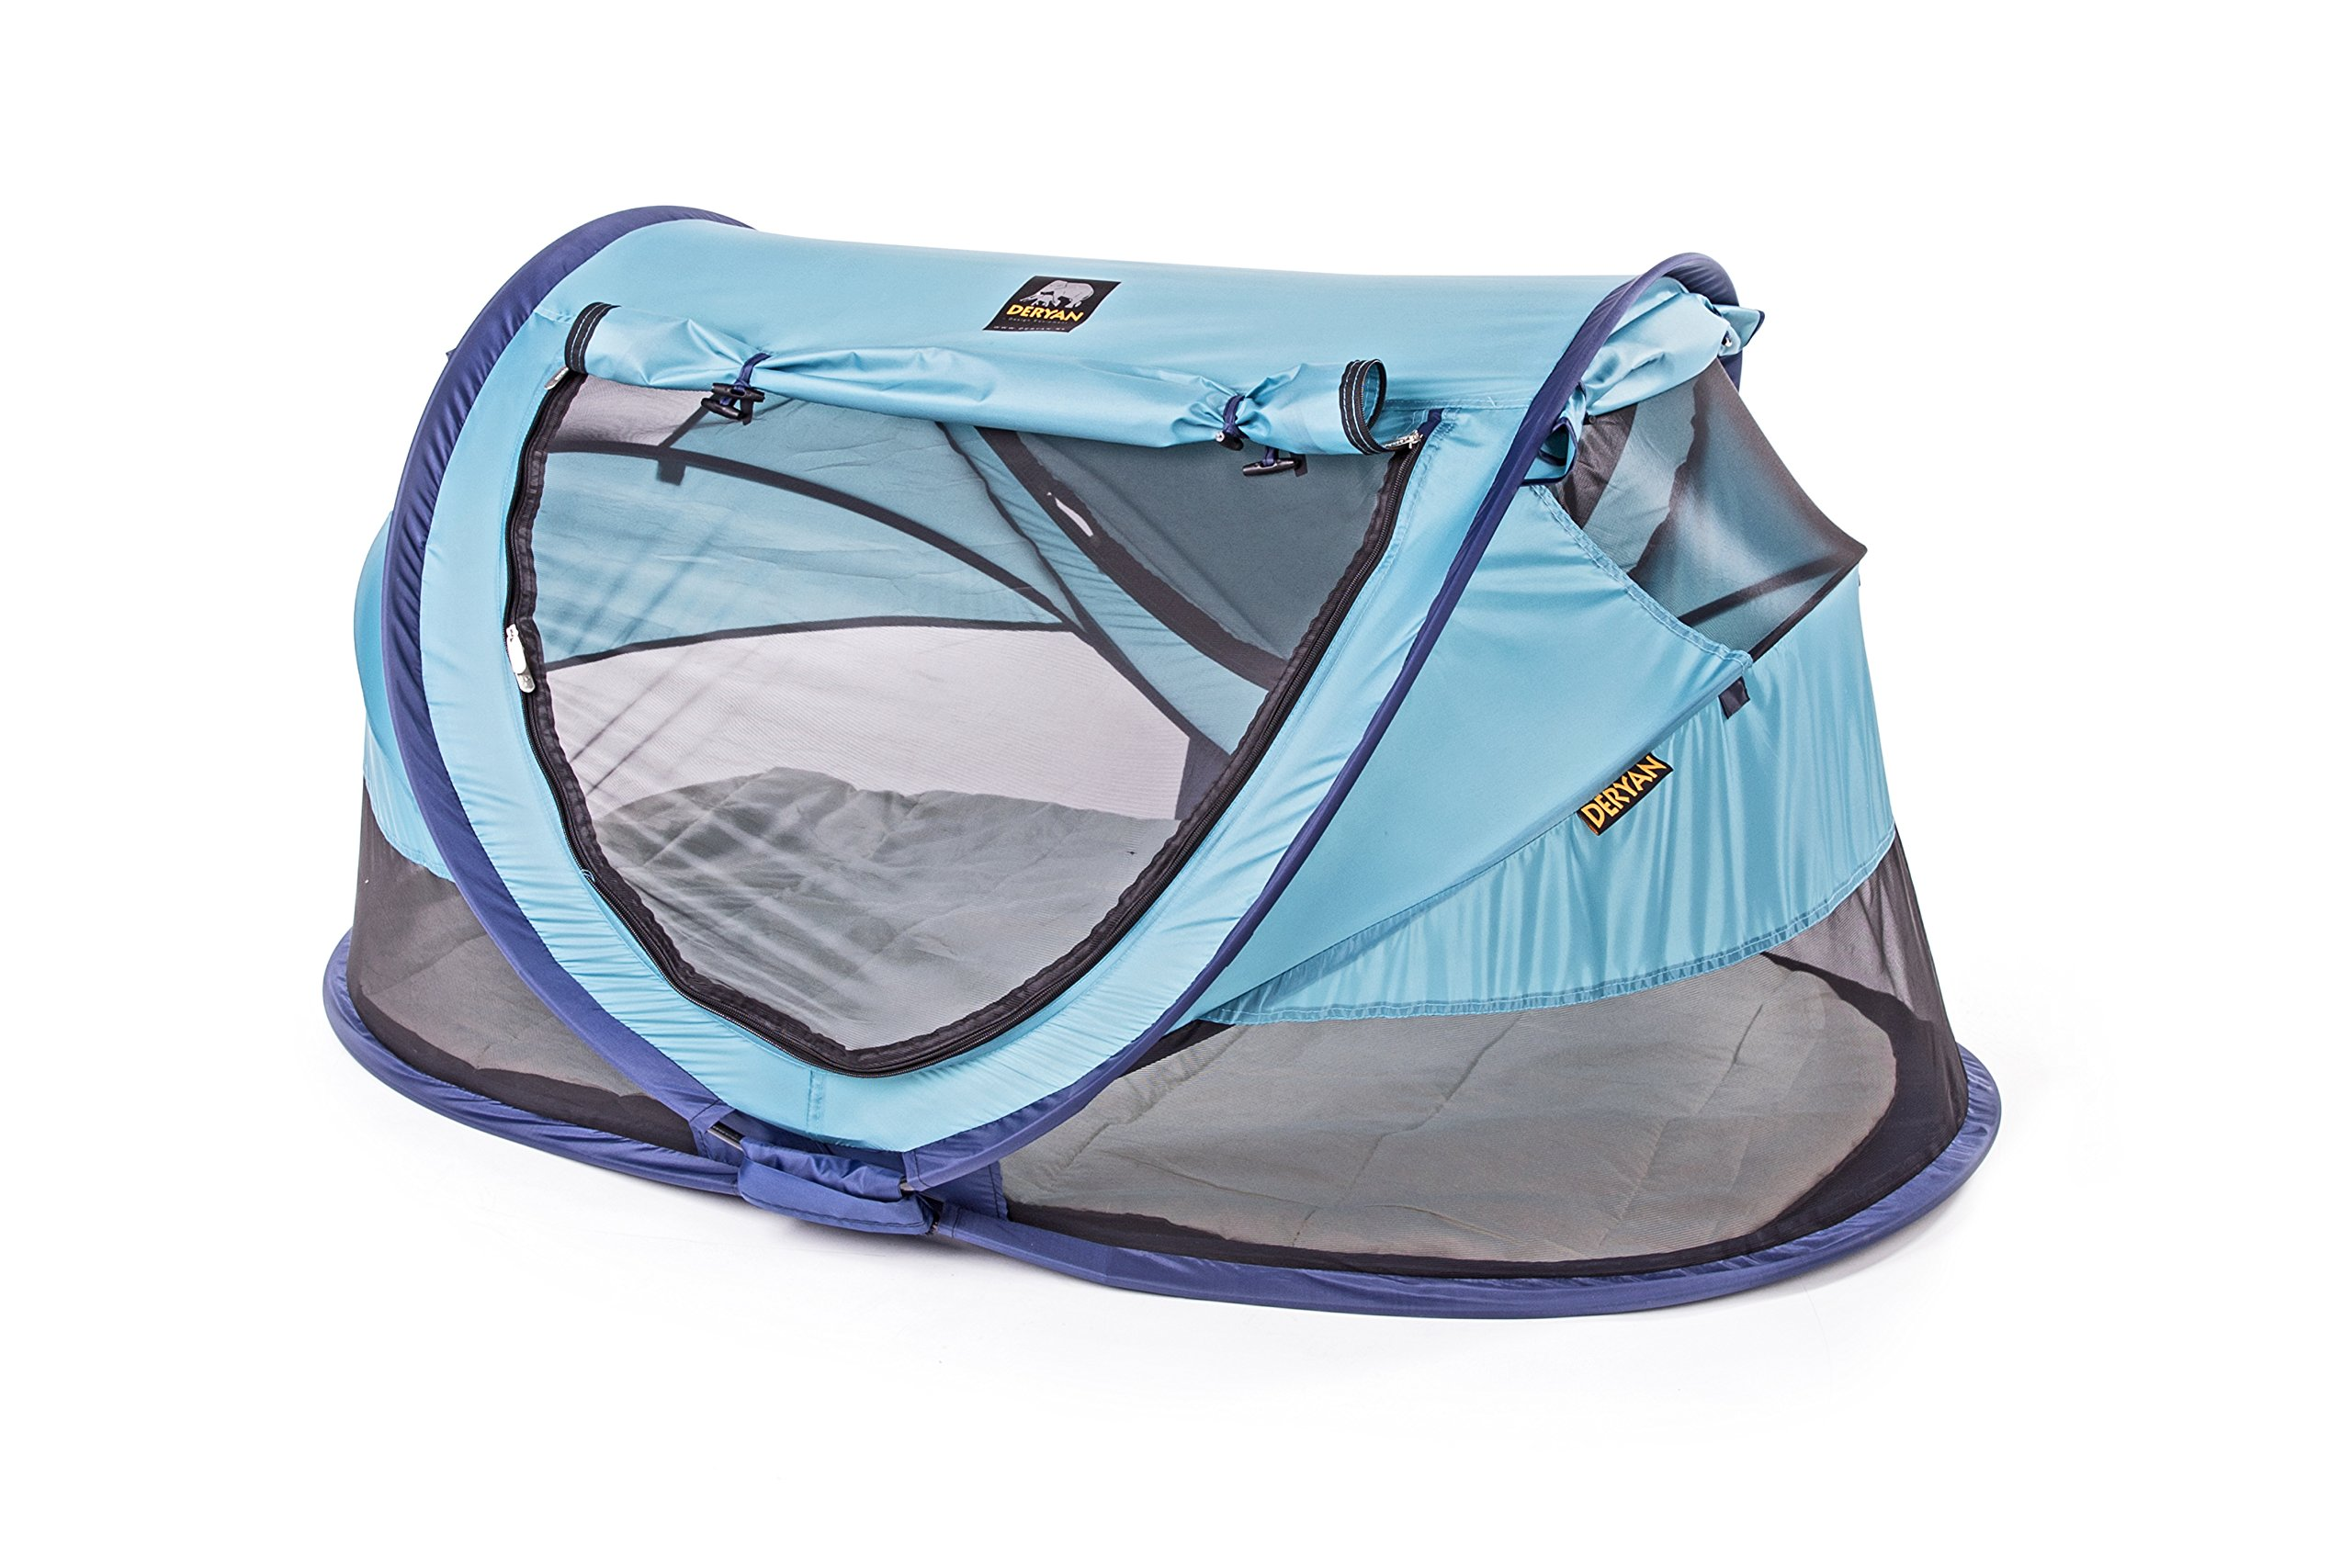 Travel Cot Peuter Luxe (Ocean) Deryan 50% UV Protection and flame retardant fabric Setup in 2 seconds and a anti-musquito net  4